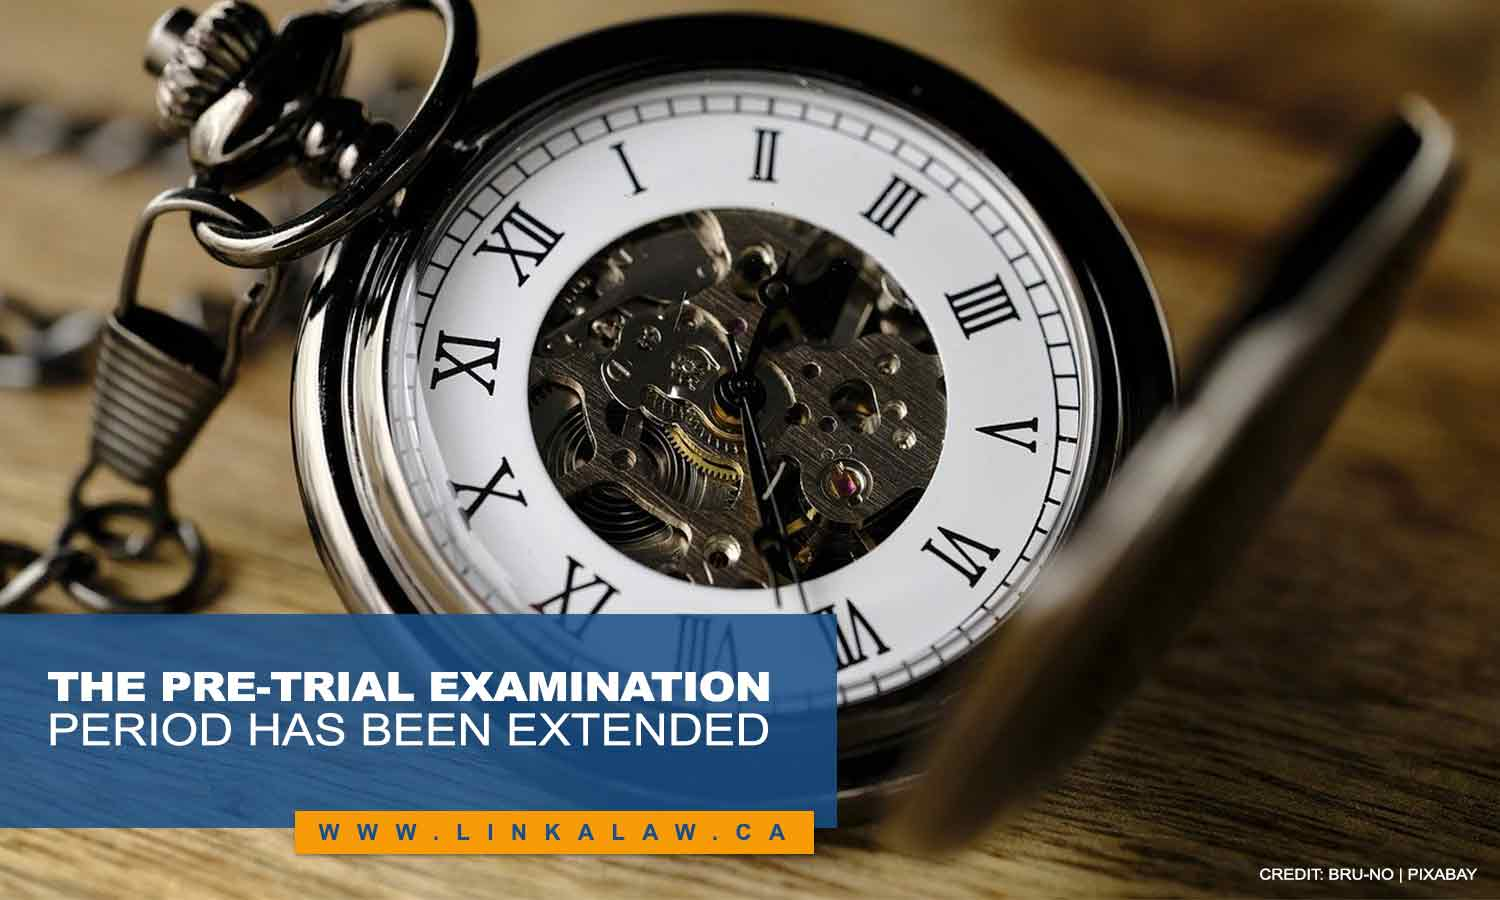 The pre-trial examination period has been extended